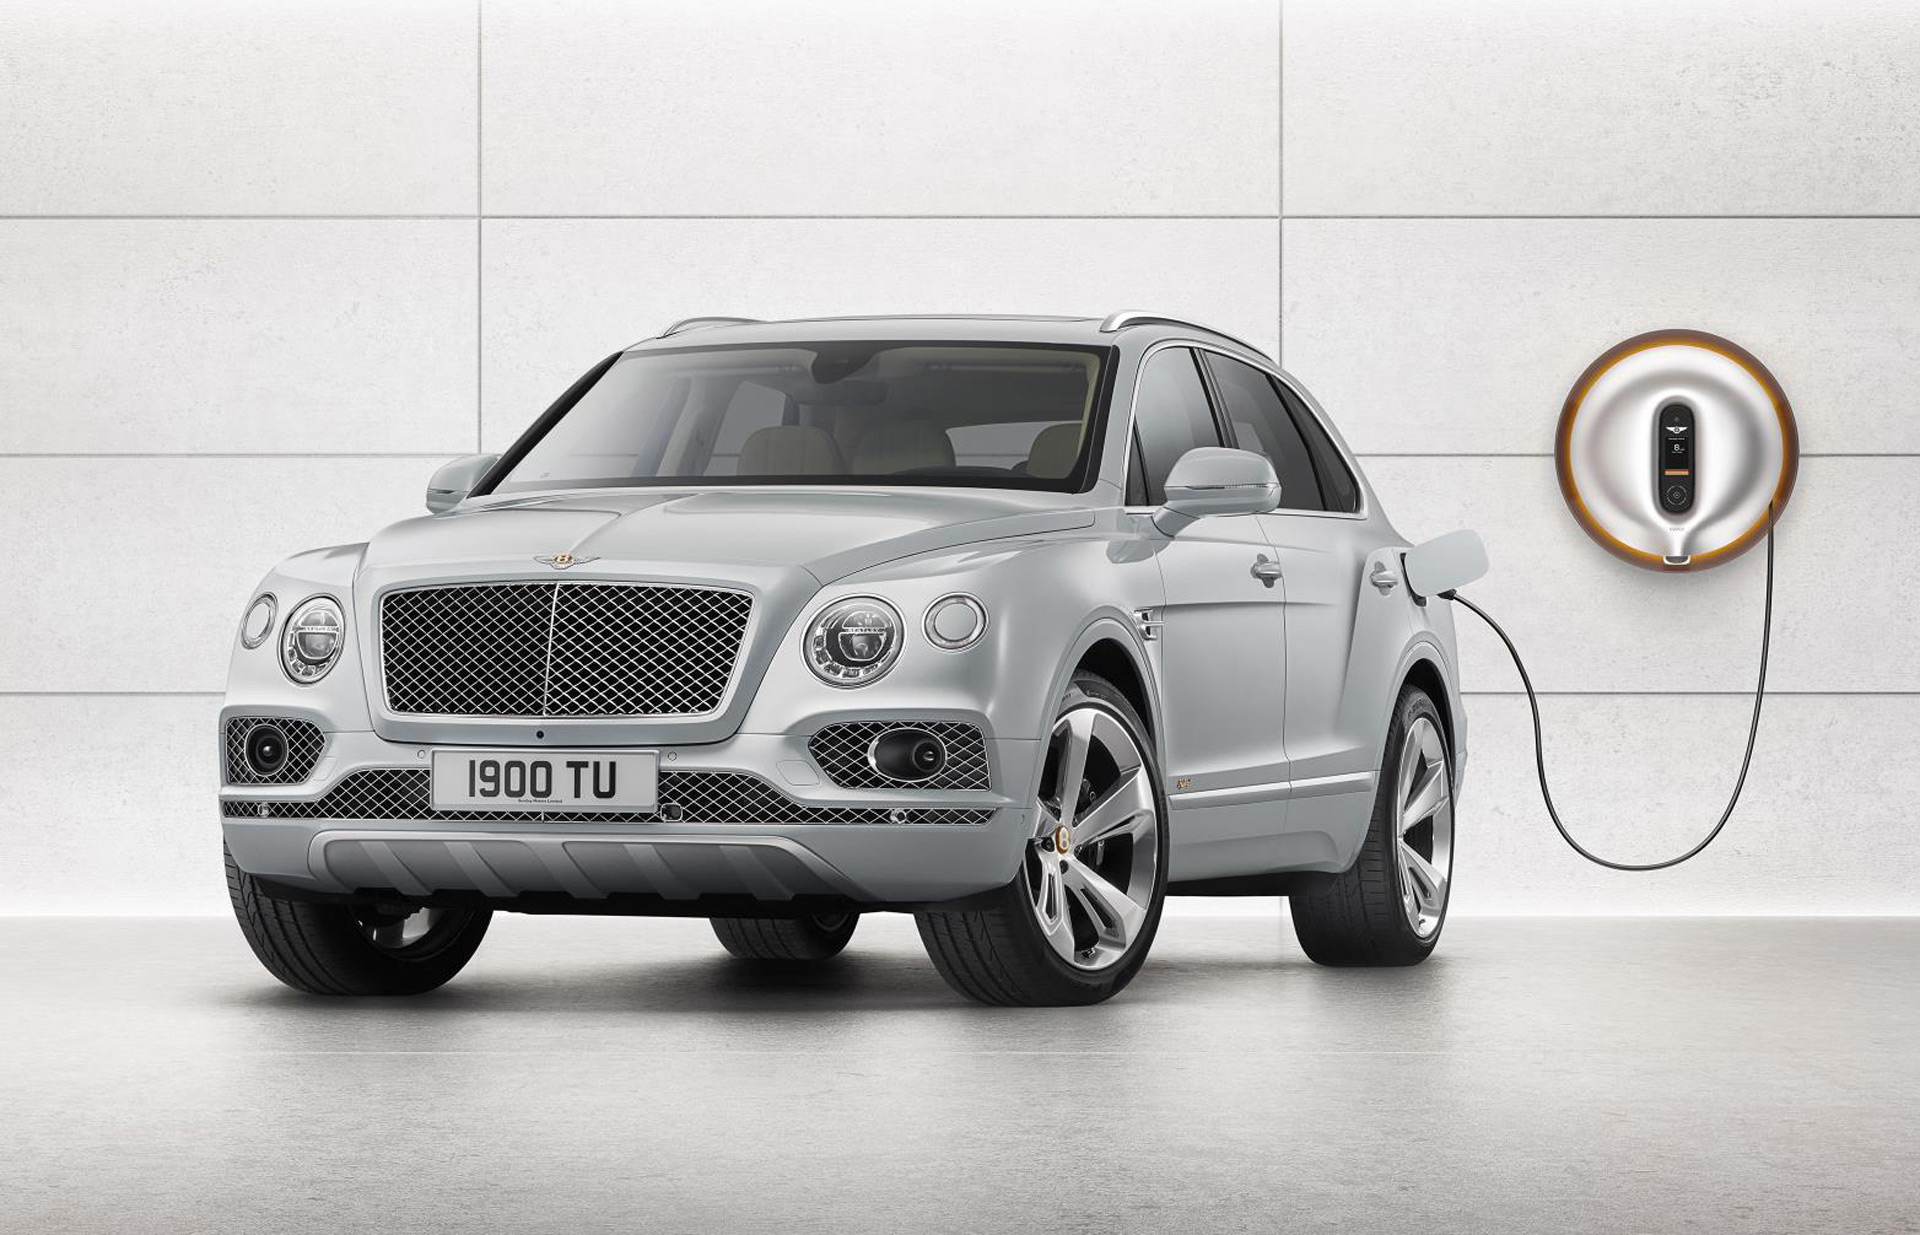 Bentley to Offer Hybrid Powertrain on Every Model by 2023